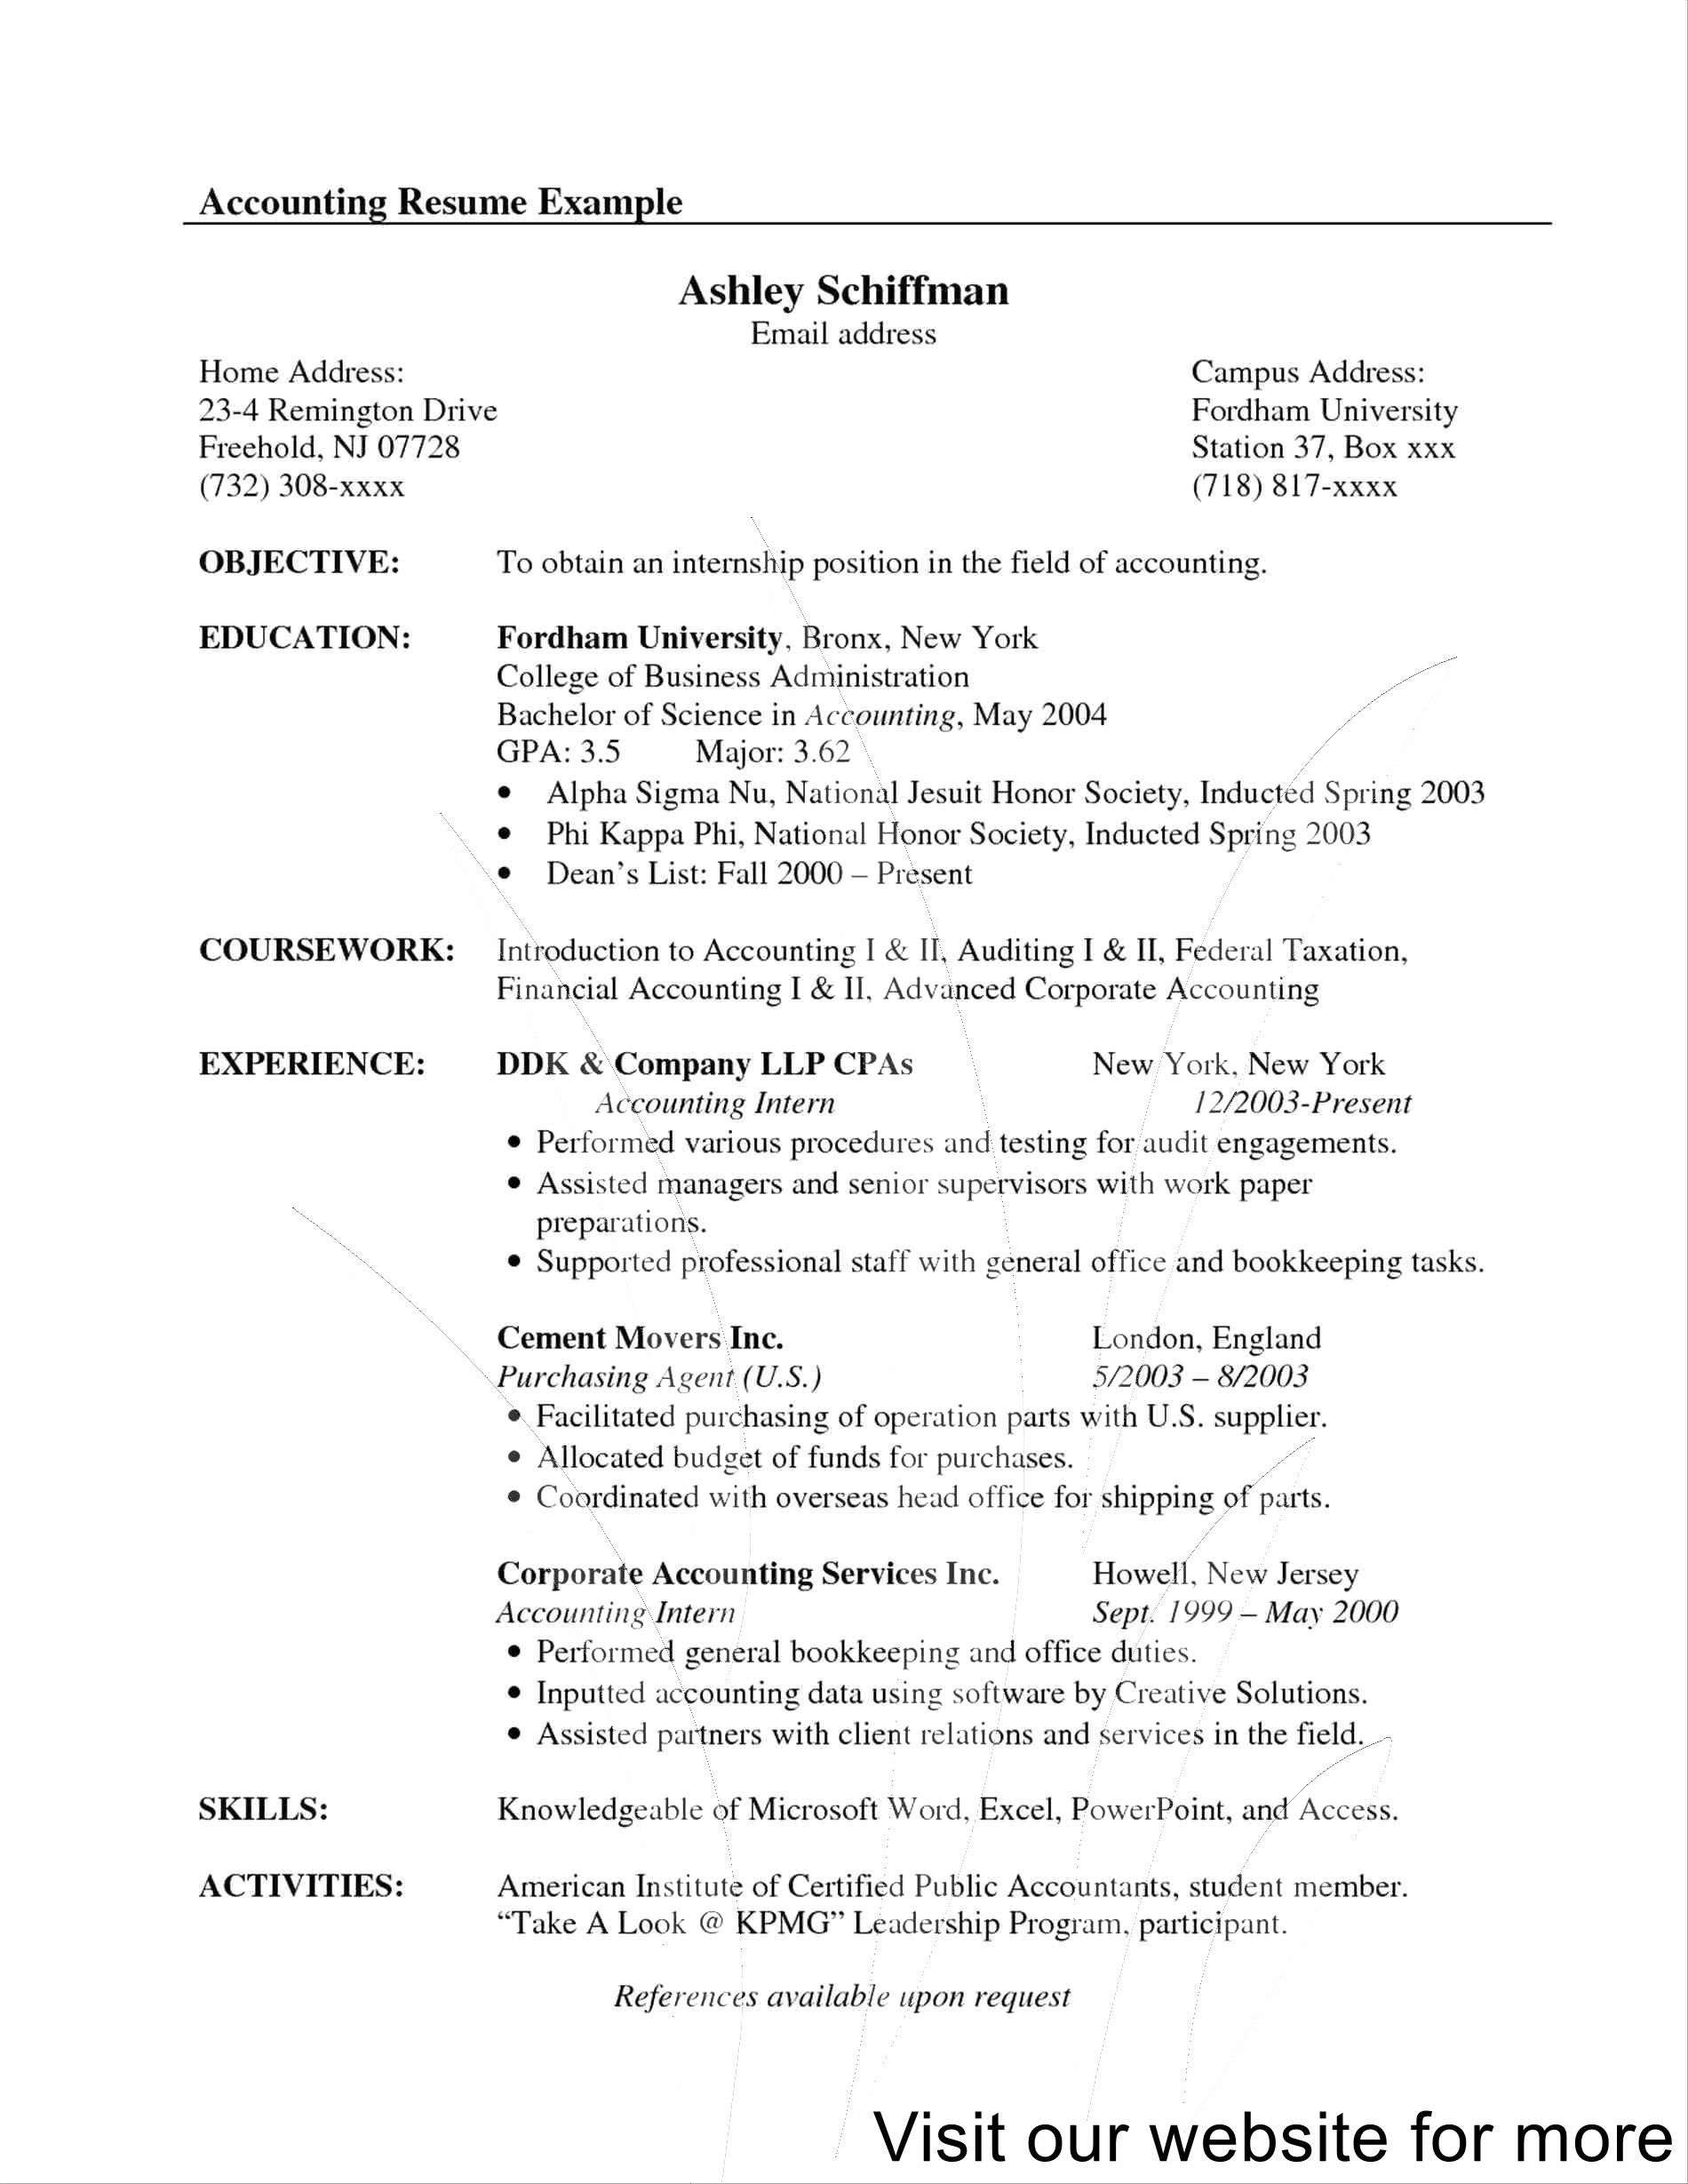 resume examples for freshers in 2020 Resume examples